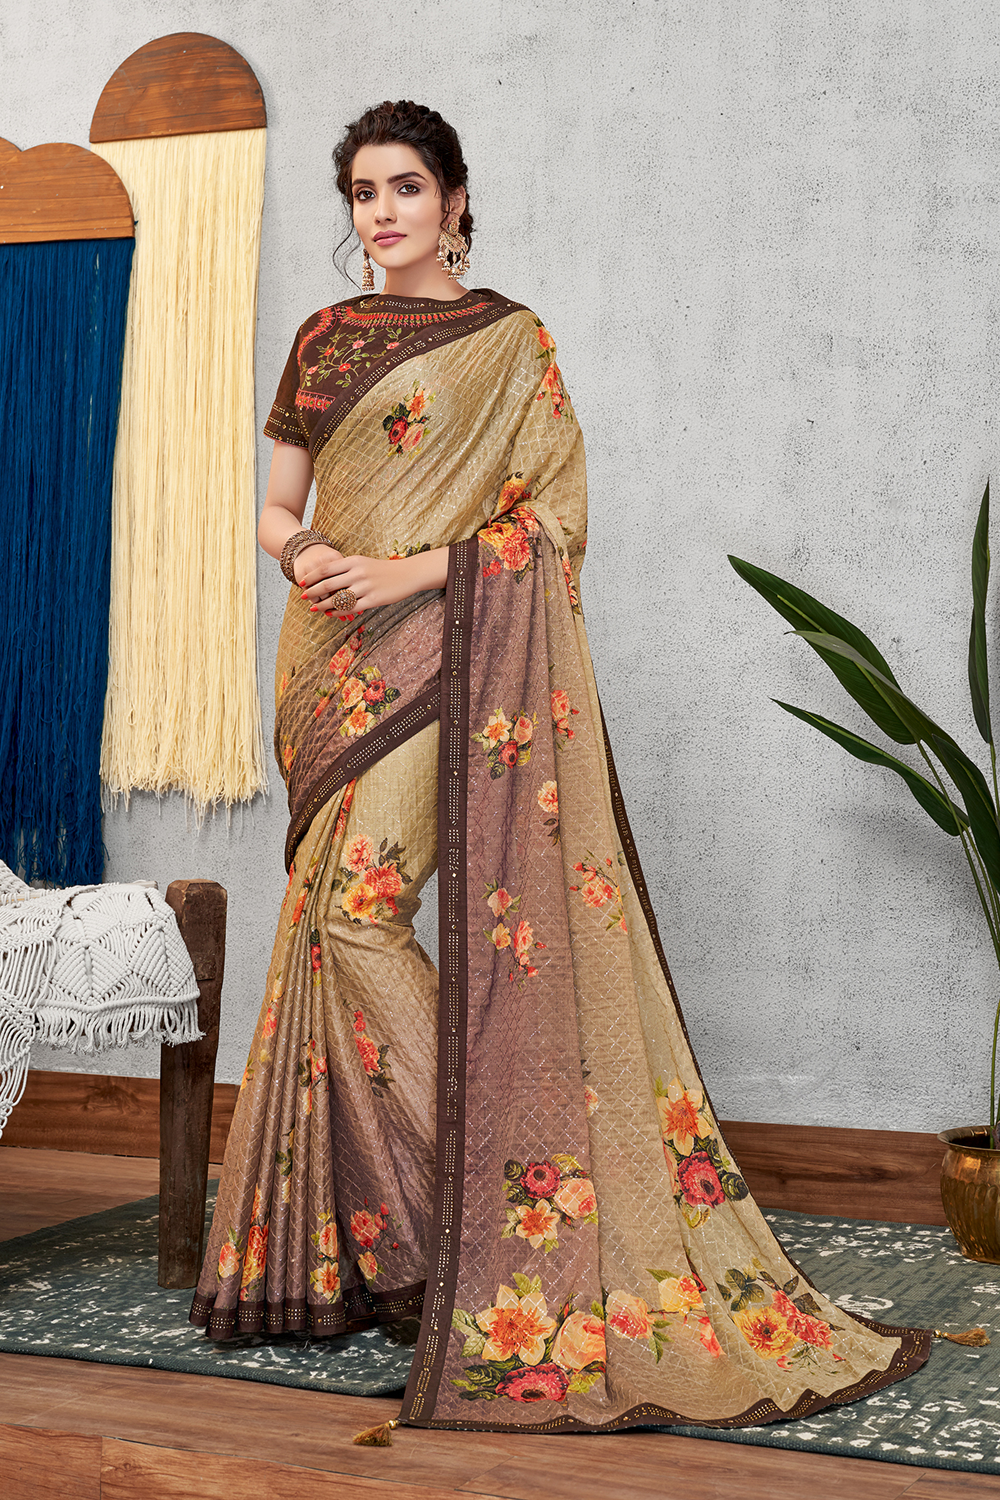 Floral prints and elegance of earthy hues outstanding sequinned saree